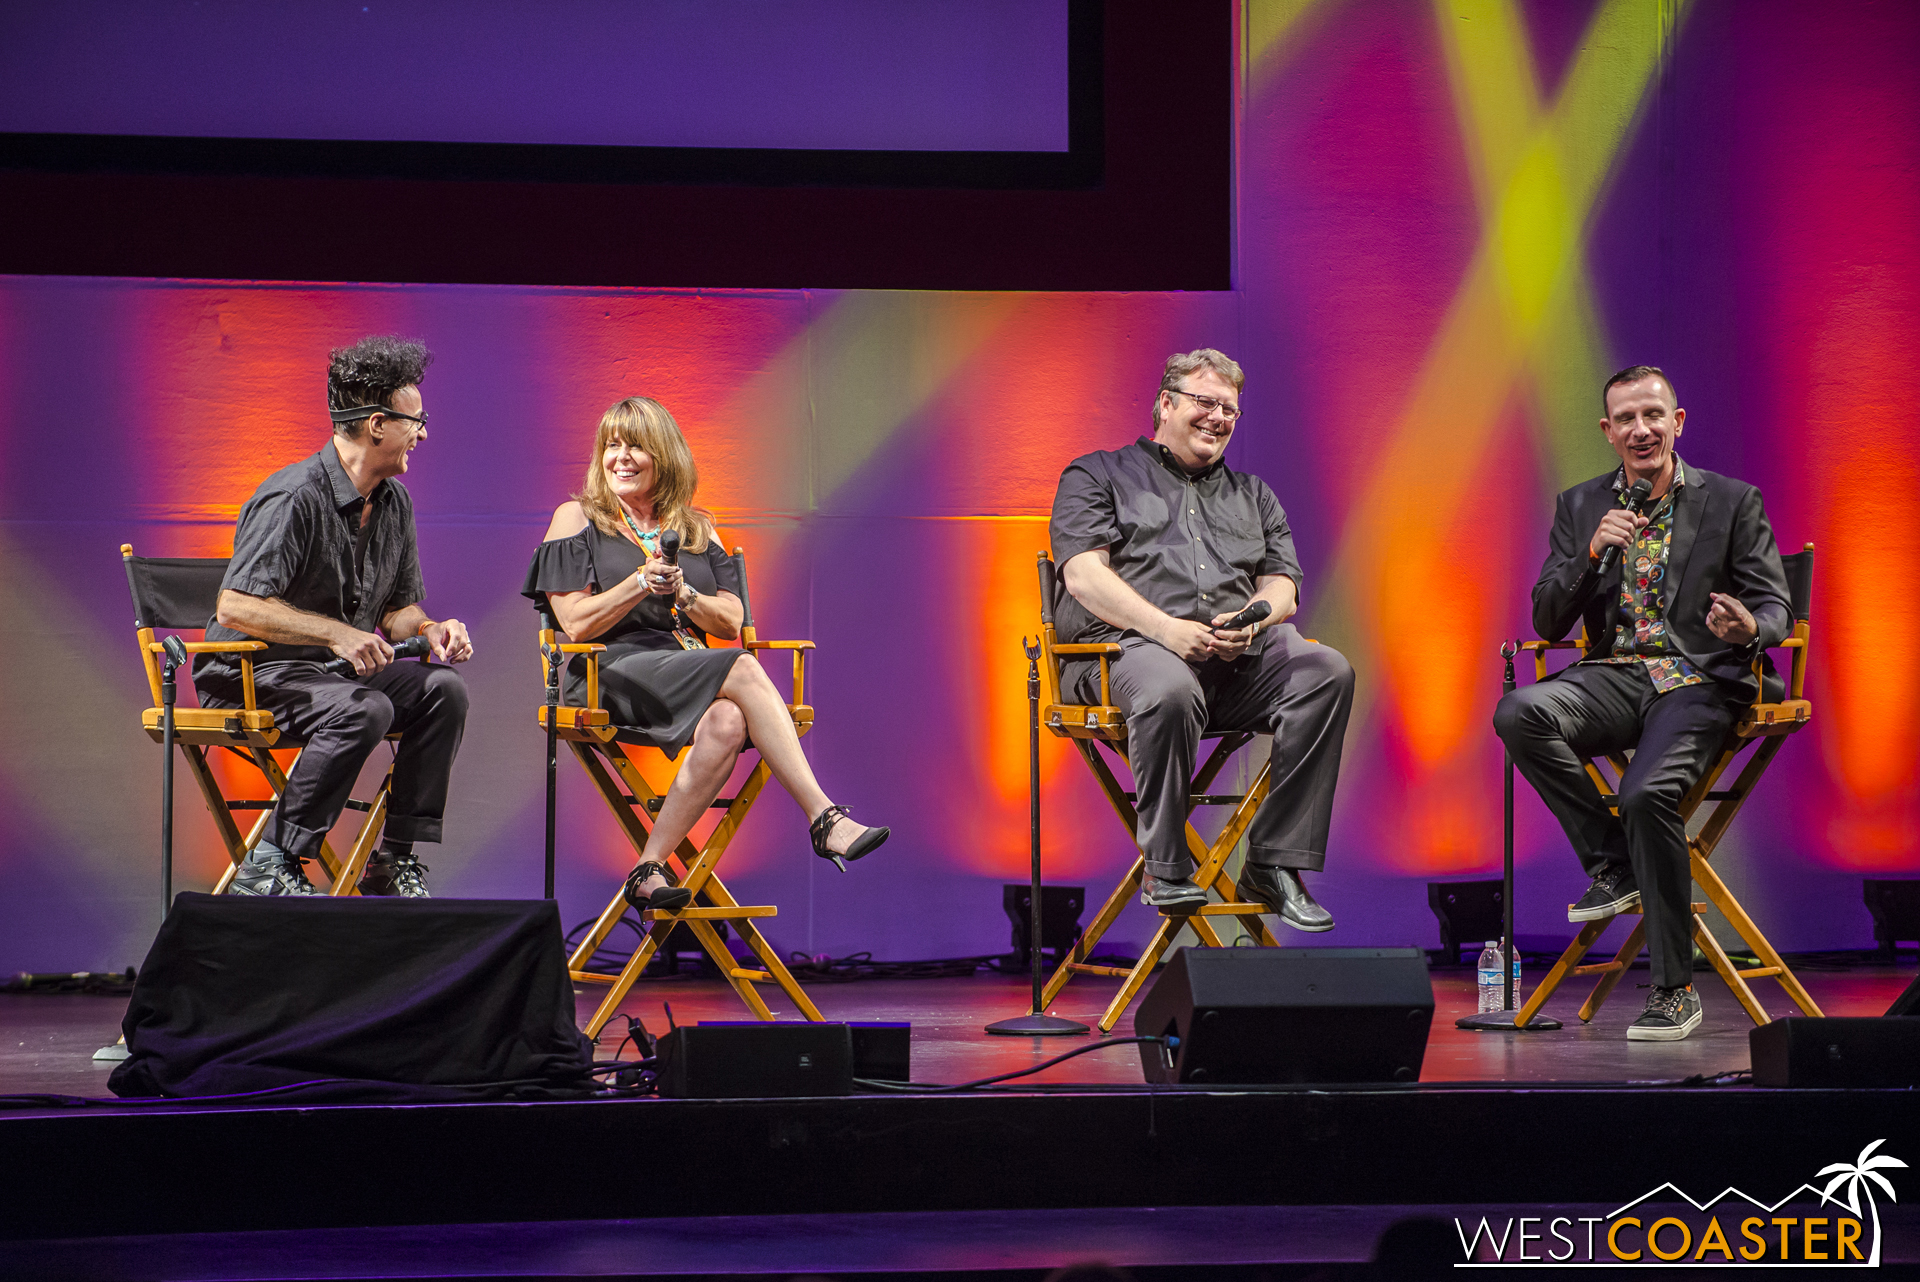 (L-R) Ed Alonzo, Vickie Yahn, and Ken Parks discuss entertainment at Knott's Scary Farm.